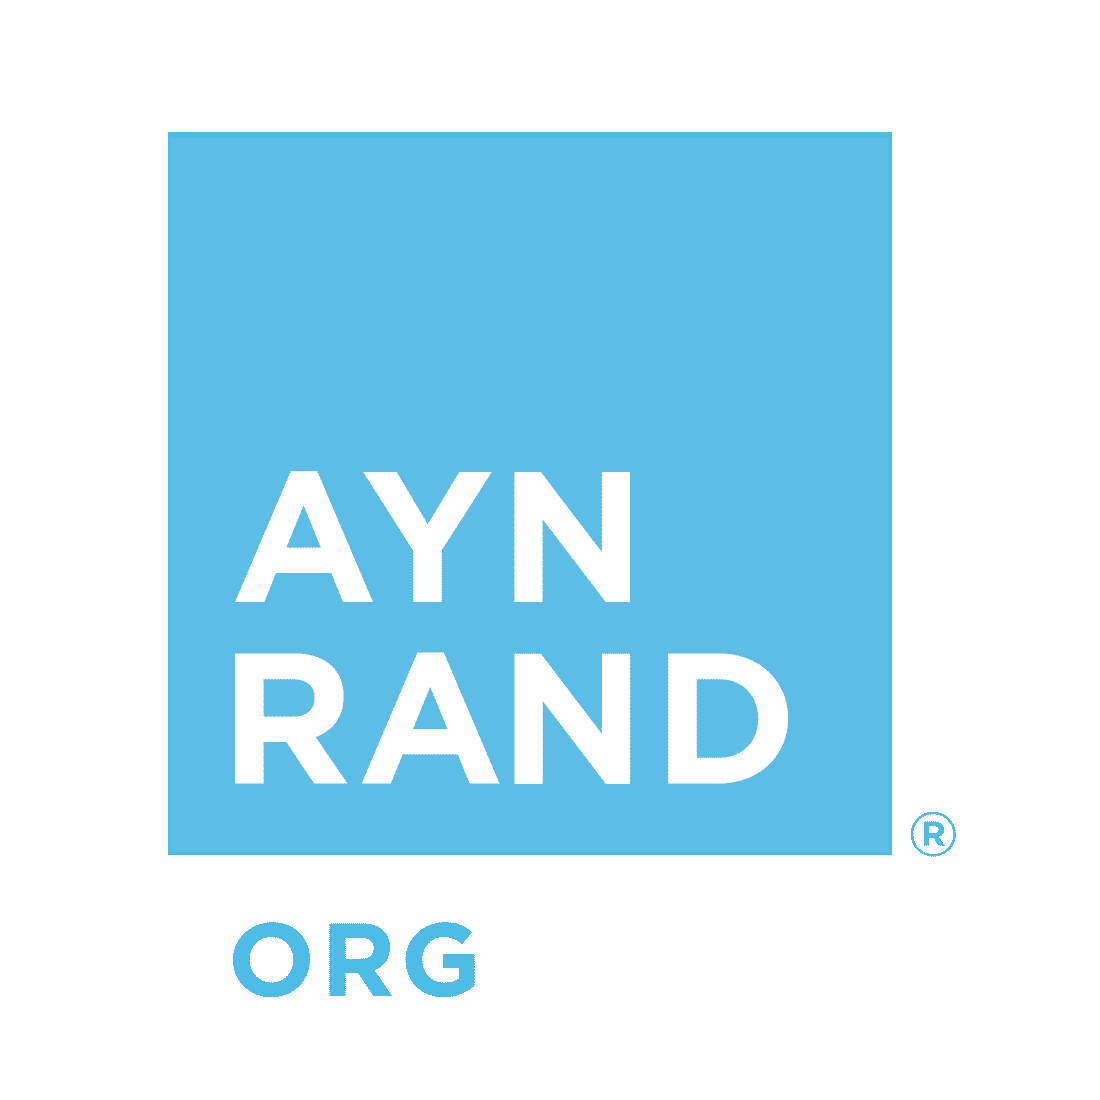 Welcome to AynRand org | AynRand org